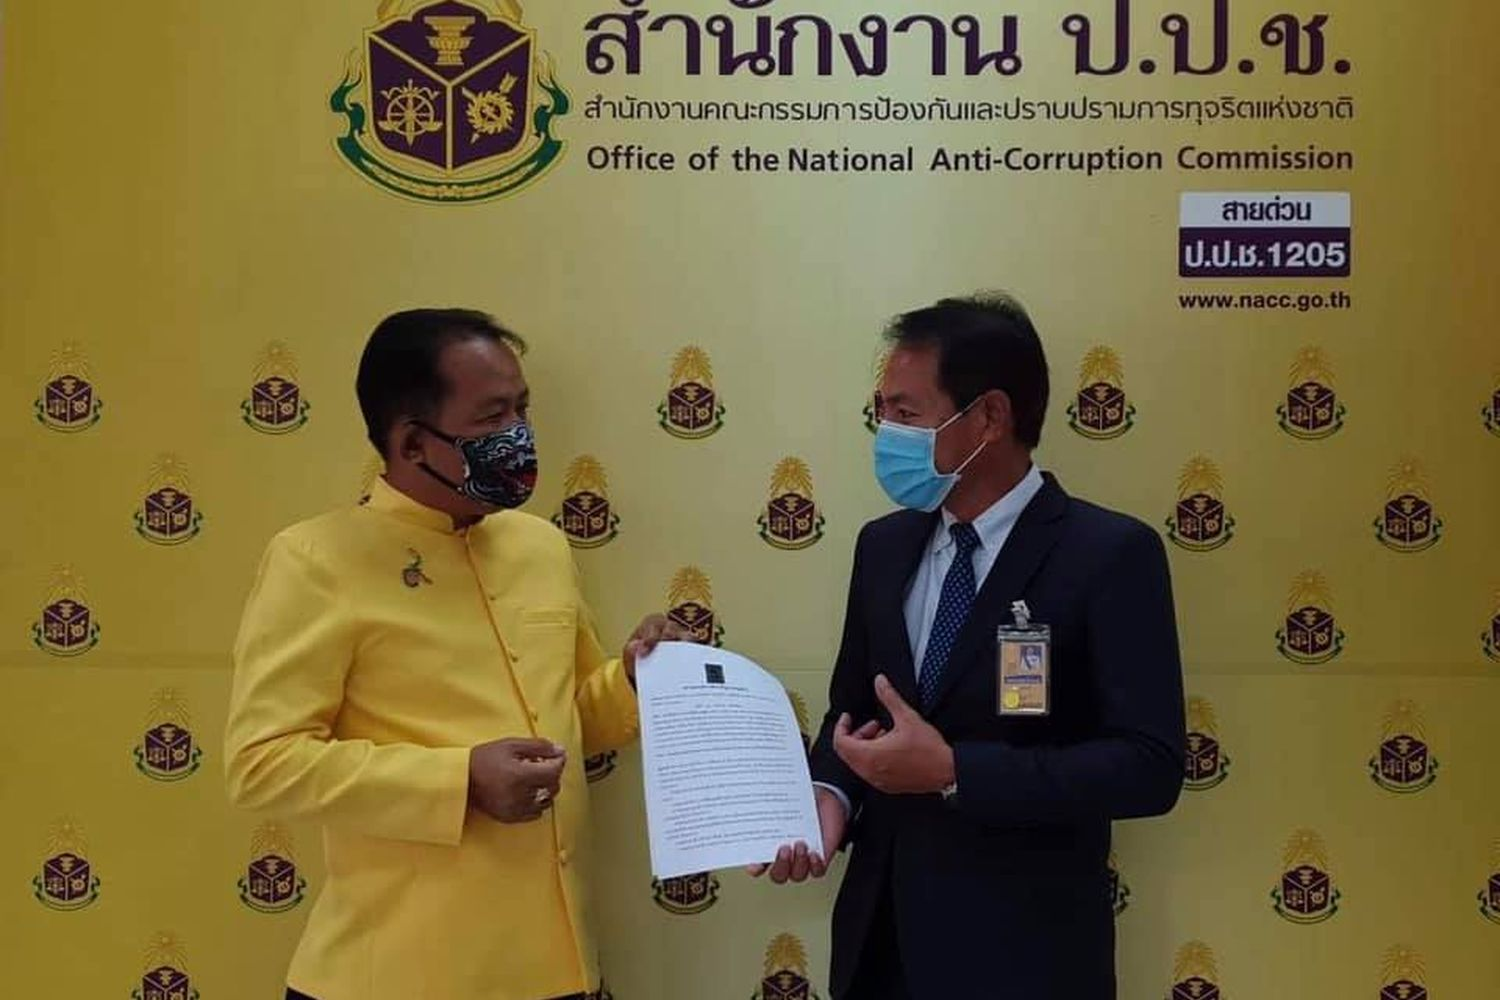 Srisuwan Chanya (left), secretary-general of the Association for the Protection of the Constitution, submits a petition to an official at the National Anti-Corruption Commission (NACC) office to ask the NACC to probe a bribery accusation involving budget approval for the Department of Groundwater. (Photo from Facebbok ศรีสุวรรณ จรรยา)